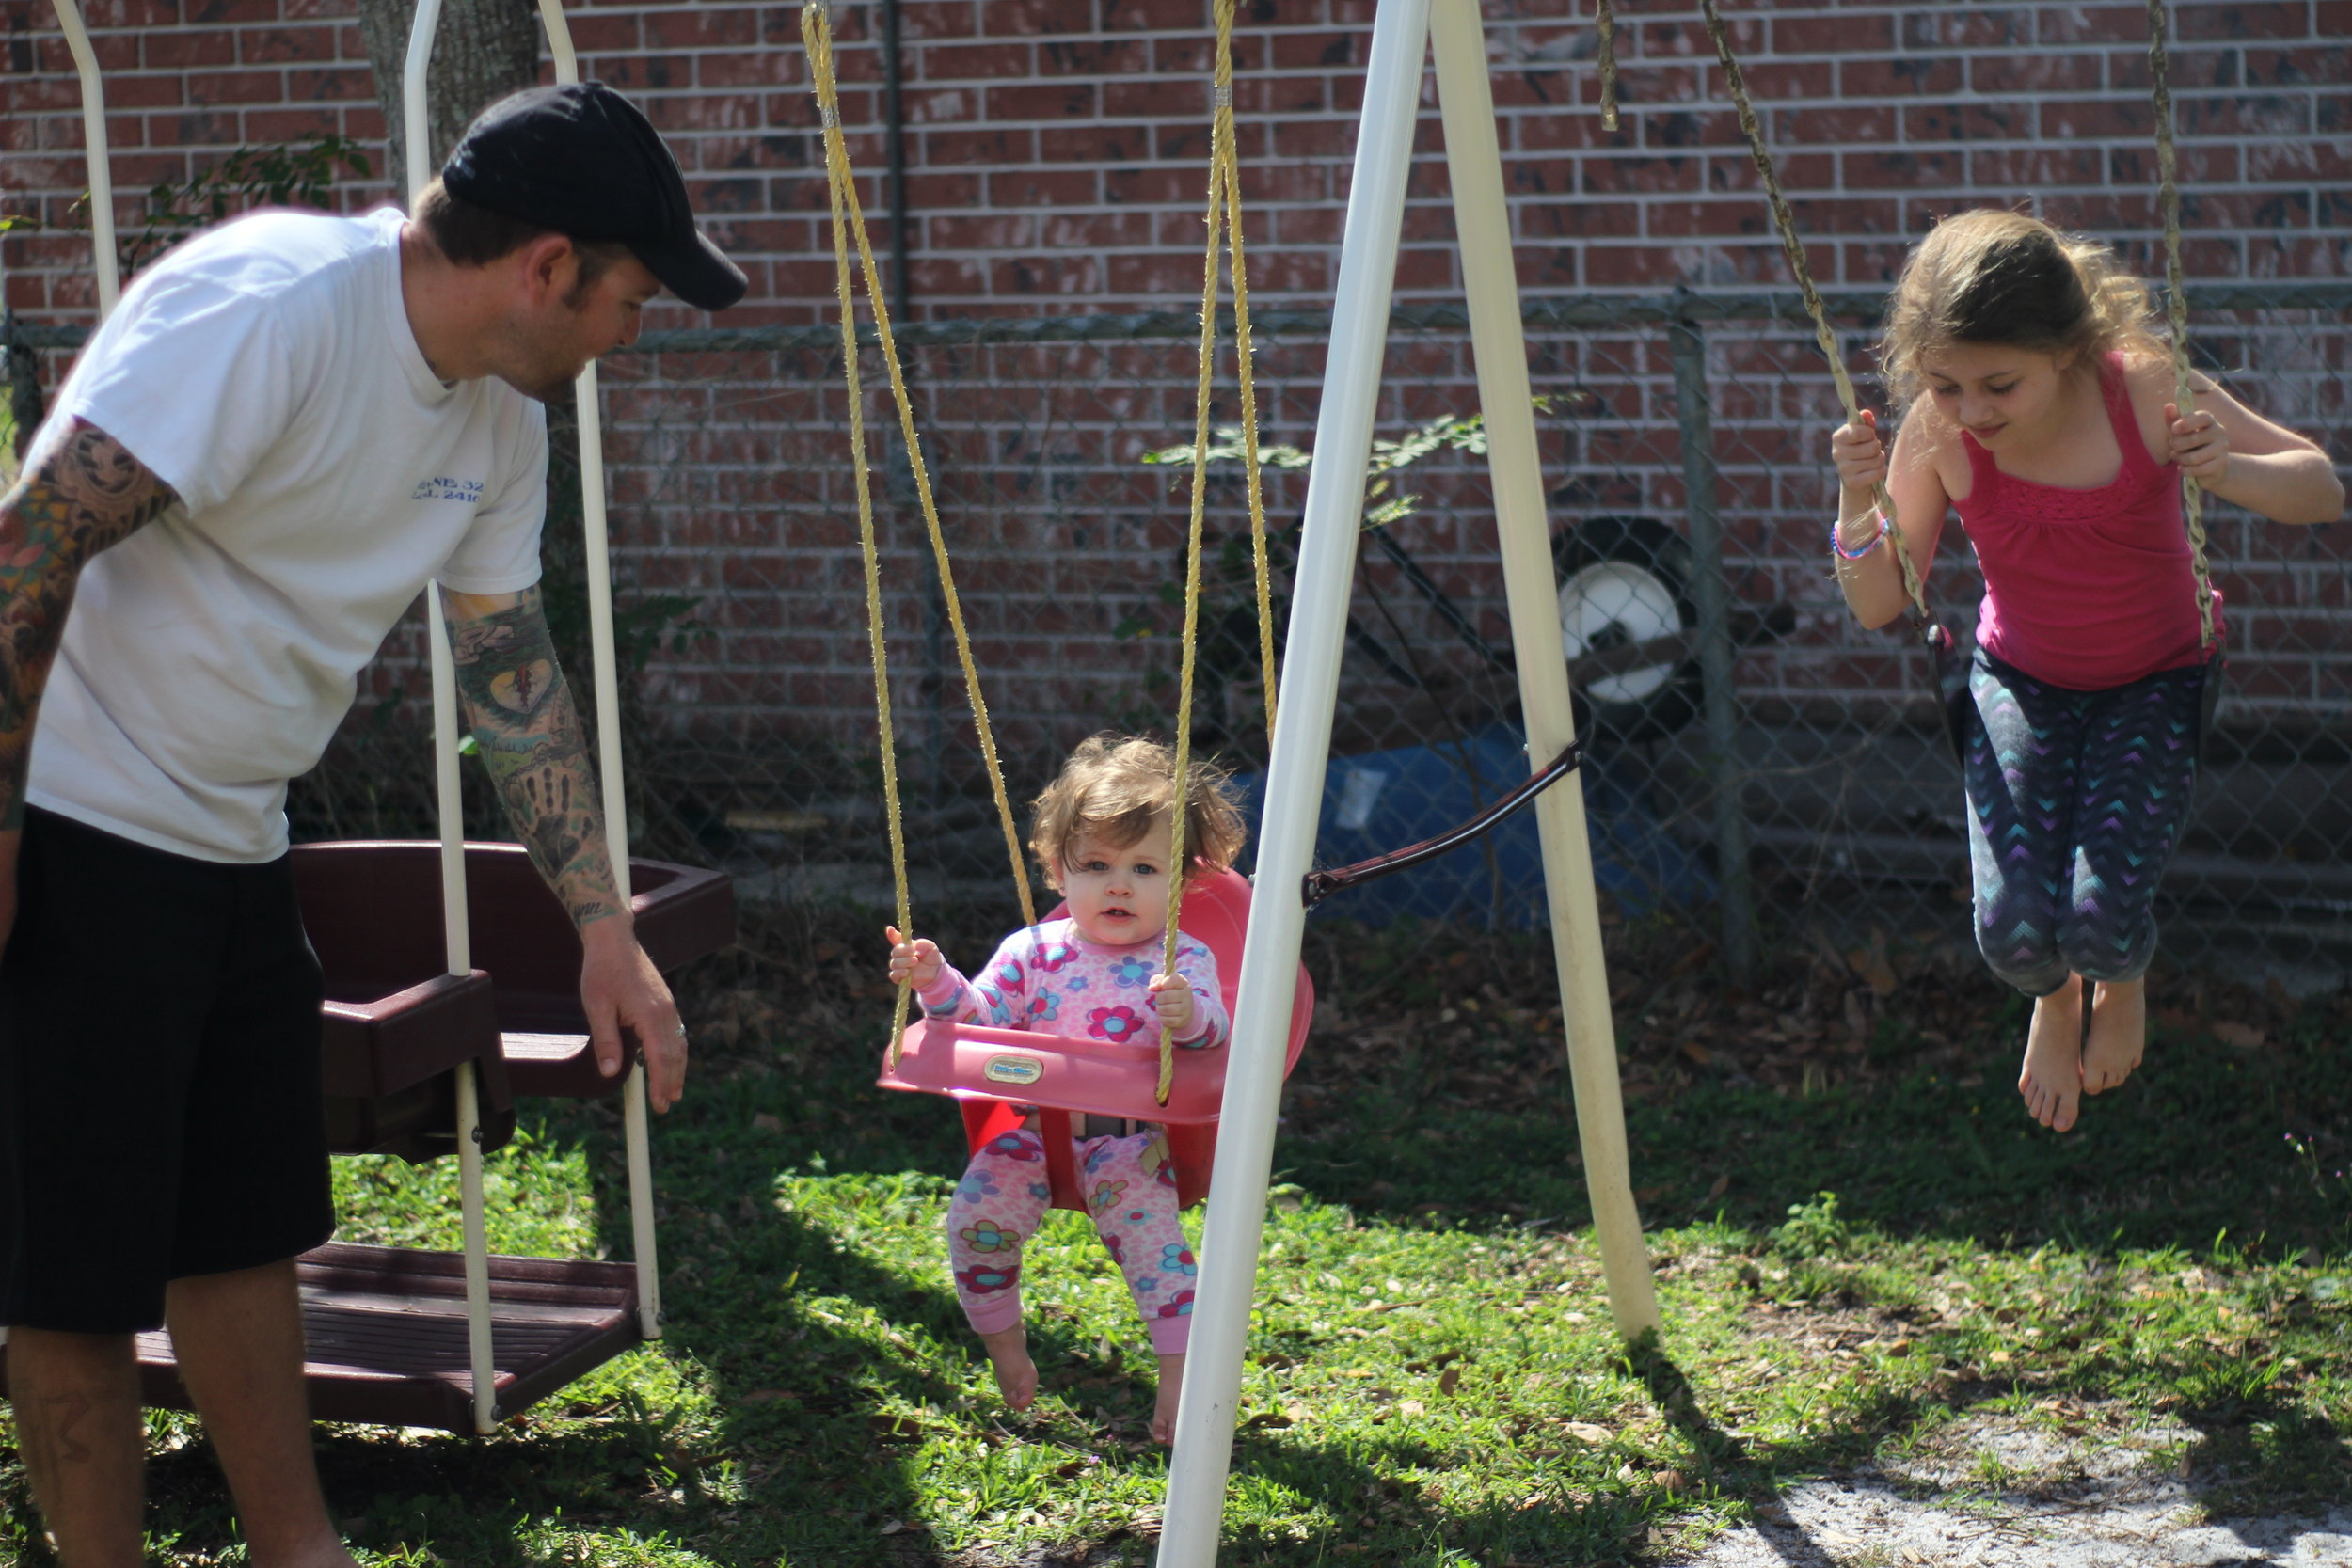 Vandegrift watches his two daughters play on their playground in his backyard.